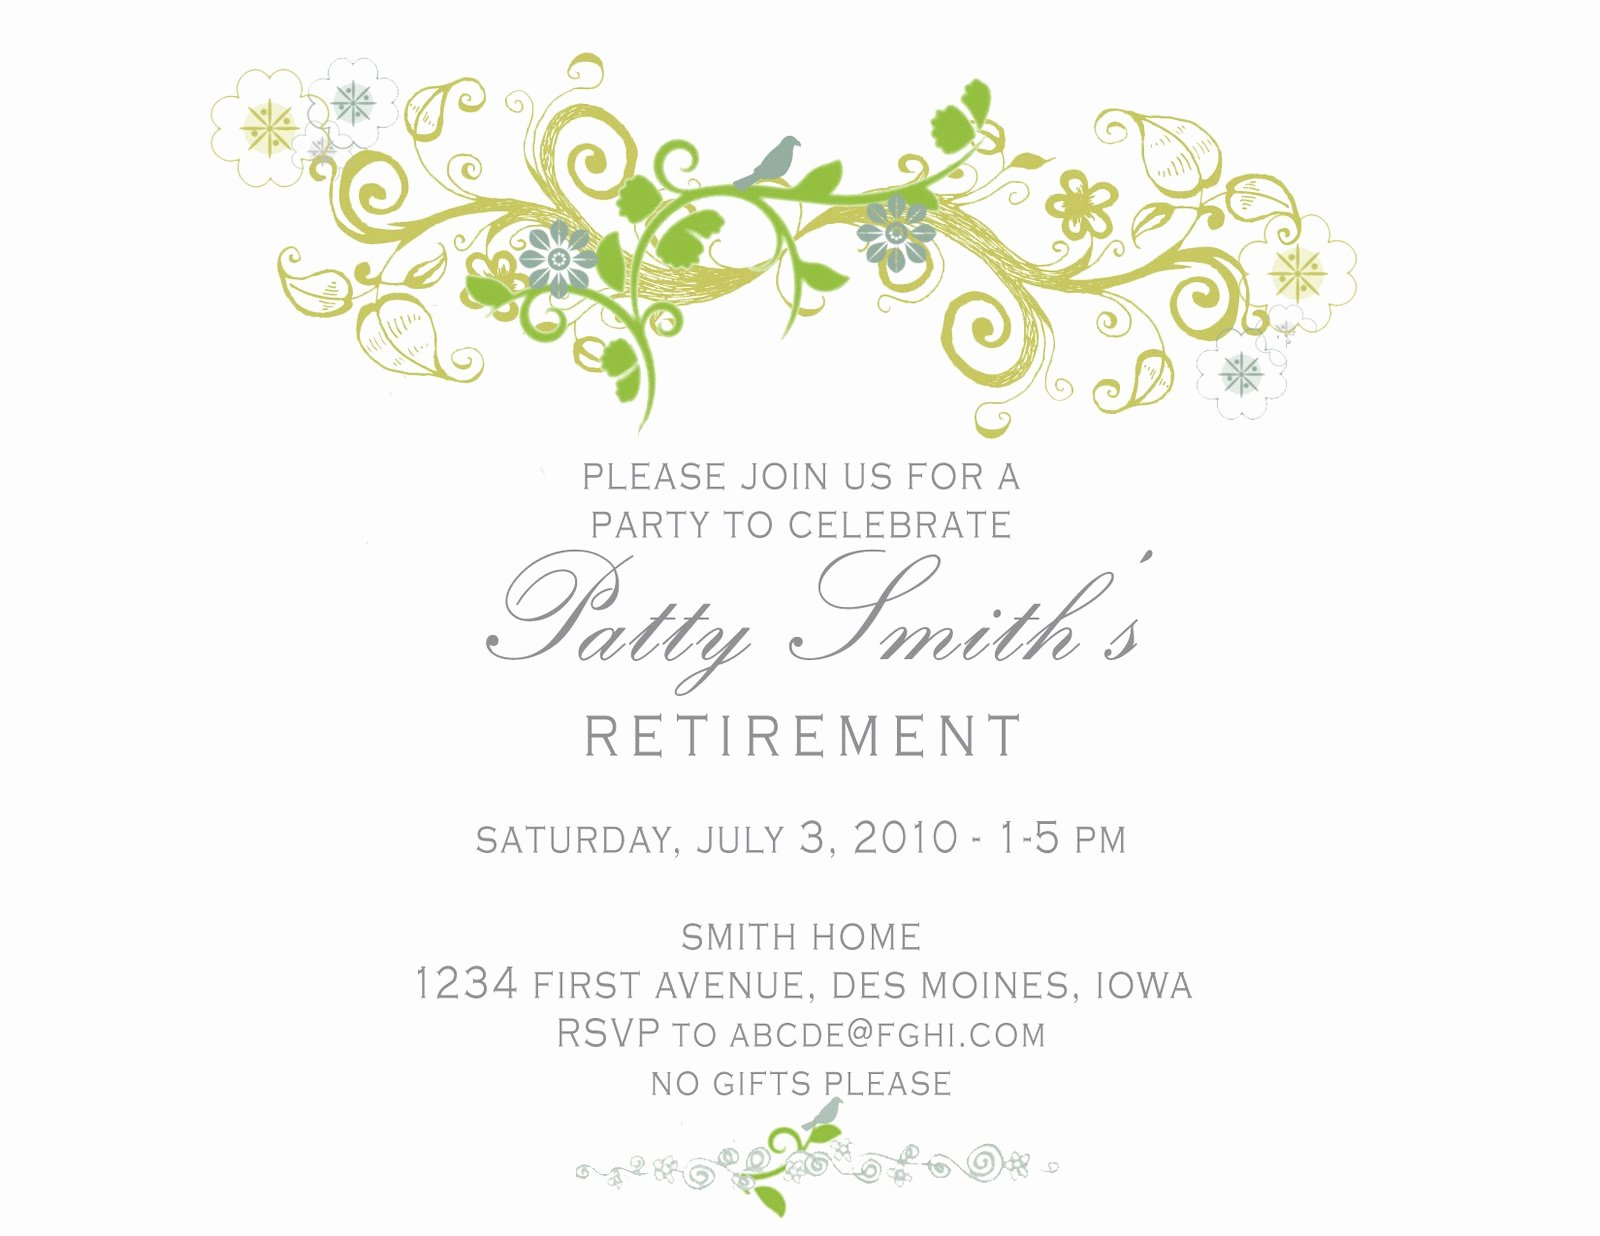 Retirement Luncheon Invitation Template Beautiful Idesign A Retirement Party Invitation